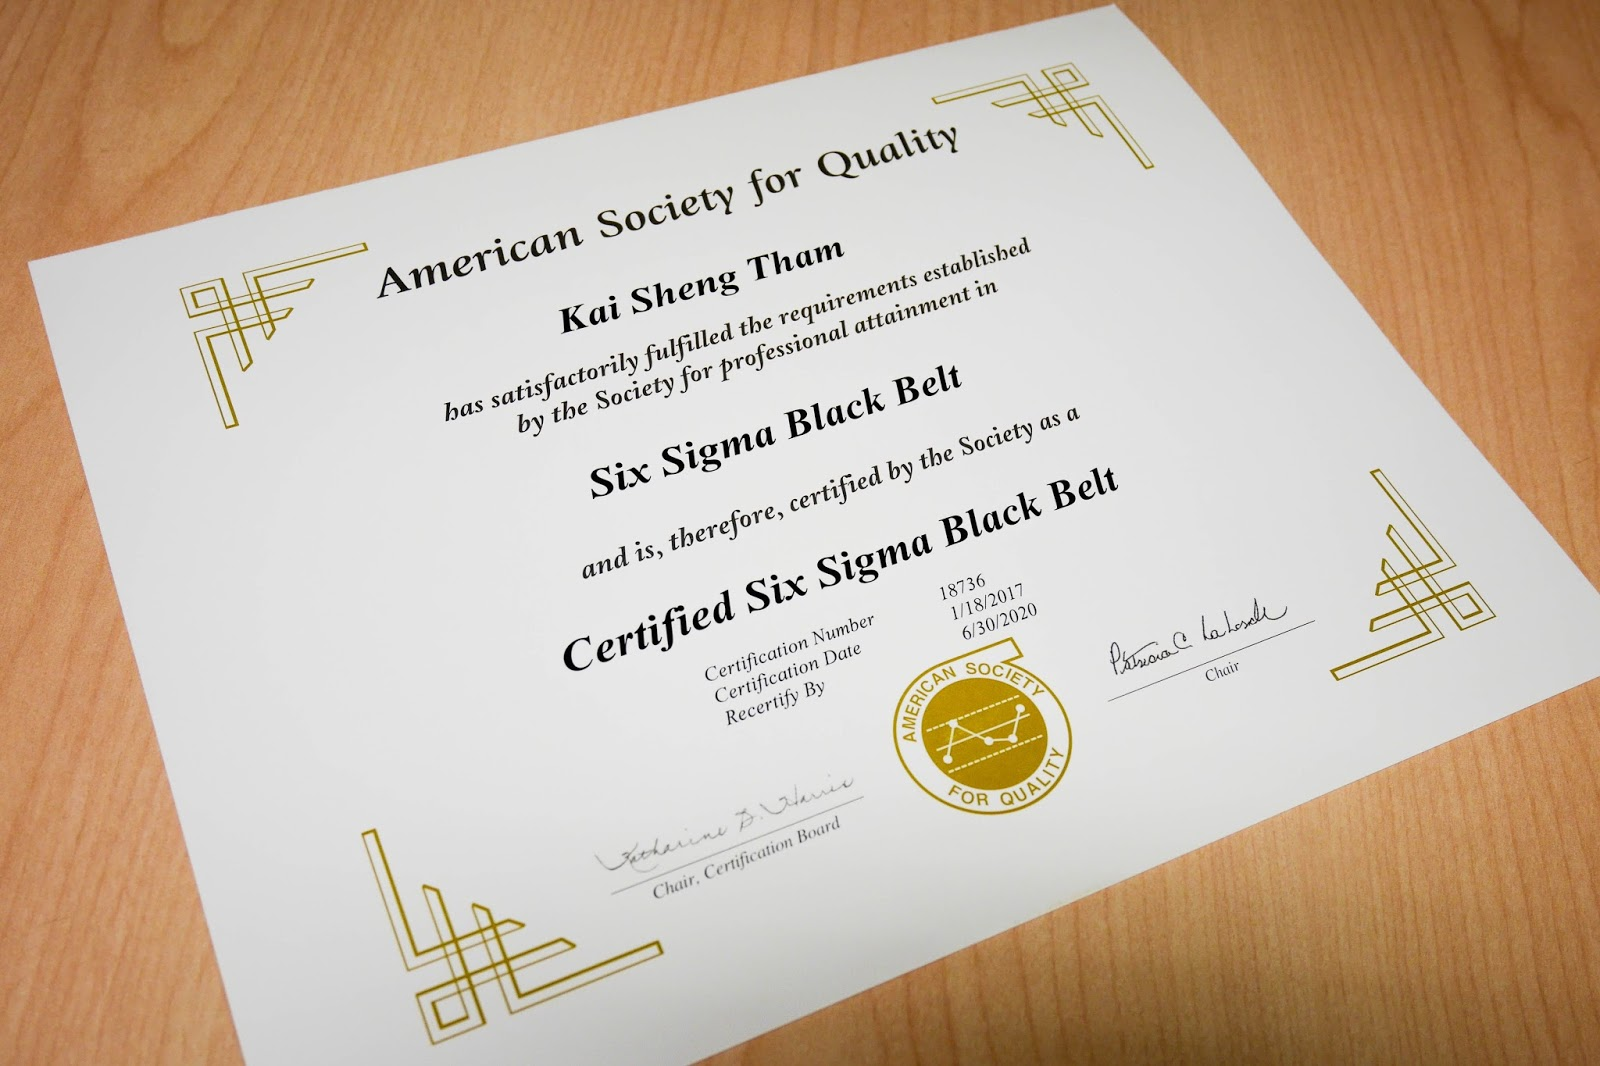 Javin Tham: Certified Six Sigma Black Belt (CSSBB)